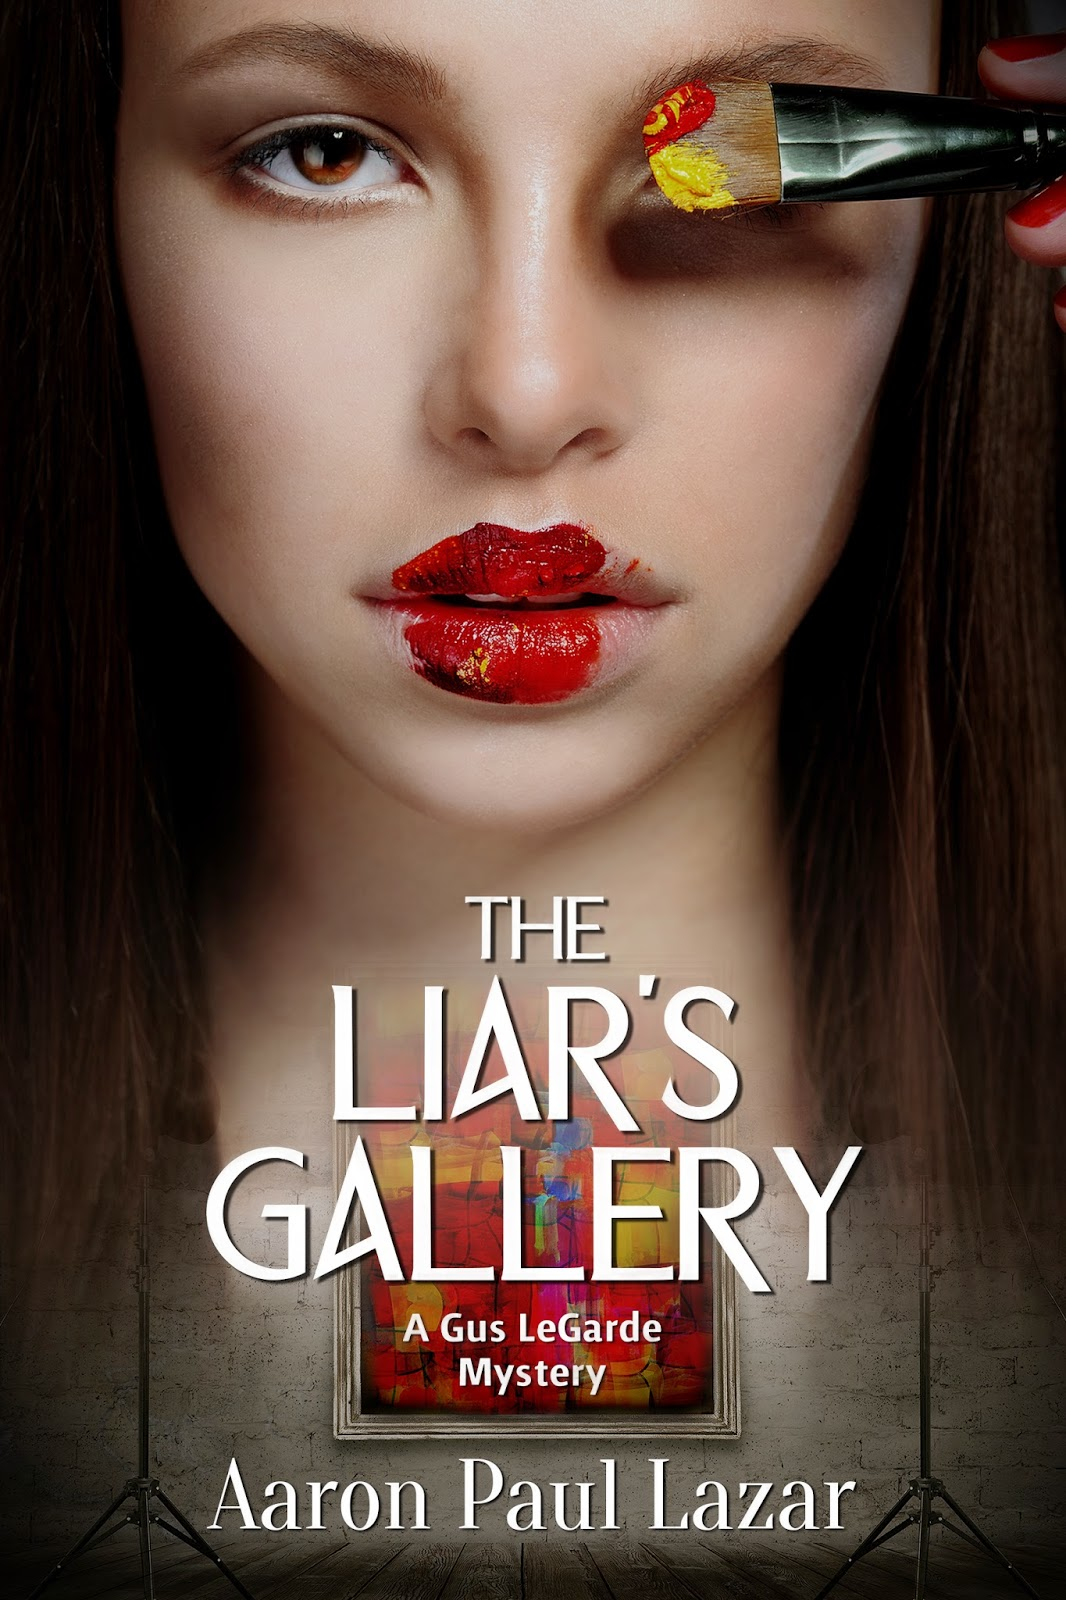 http://www.amazon.com/Liars-Gallery-LeGarde-Mystery-Mysteries-ebook/dp/B00LMD7ZSO/ref=sr_1_1?s=digital-text&ie=UTF8&qid=1405013882&sr=1-1&keywords=the+liar%27s+gallery